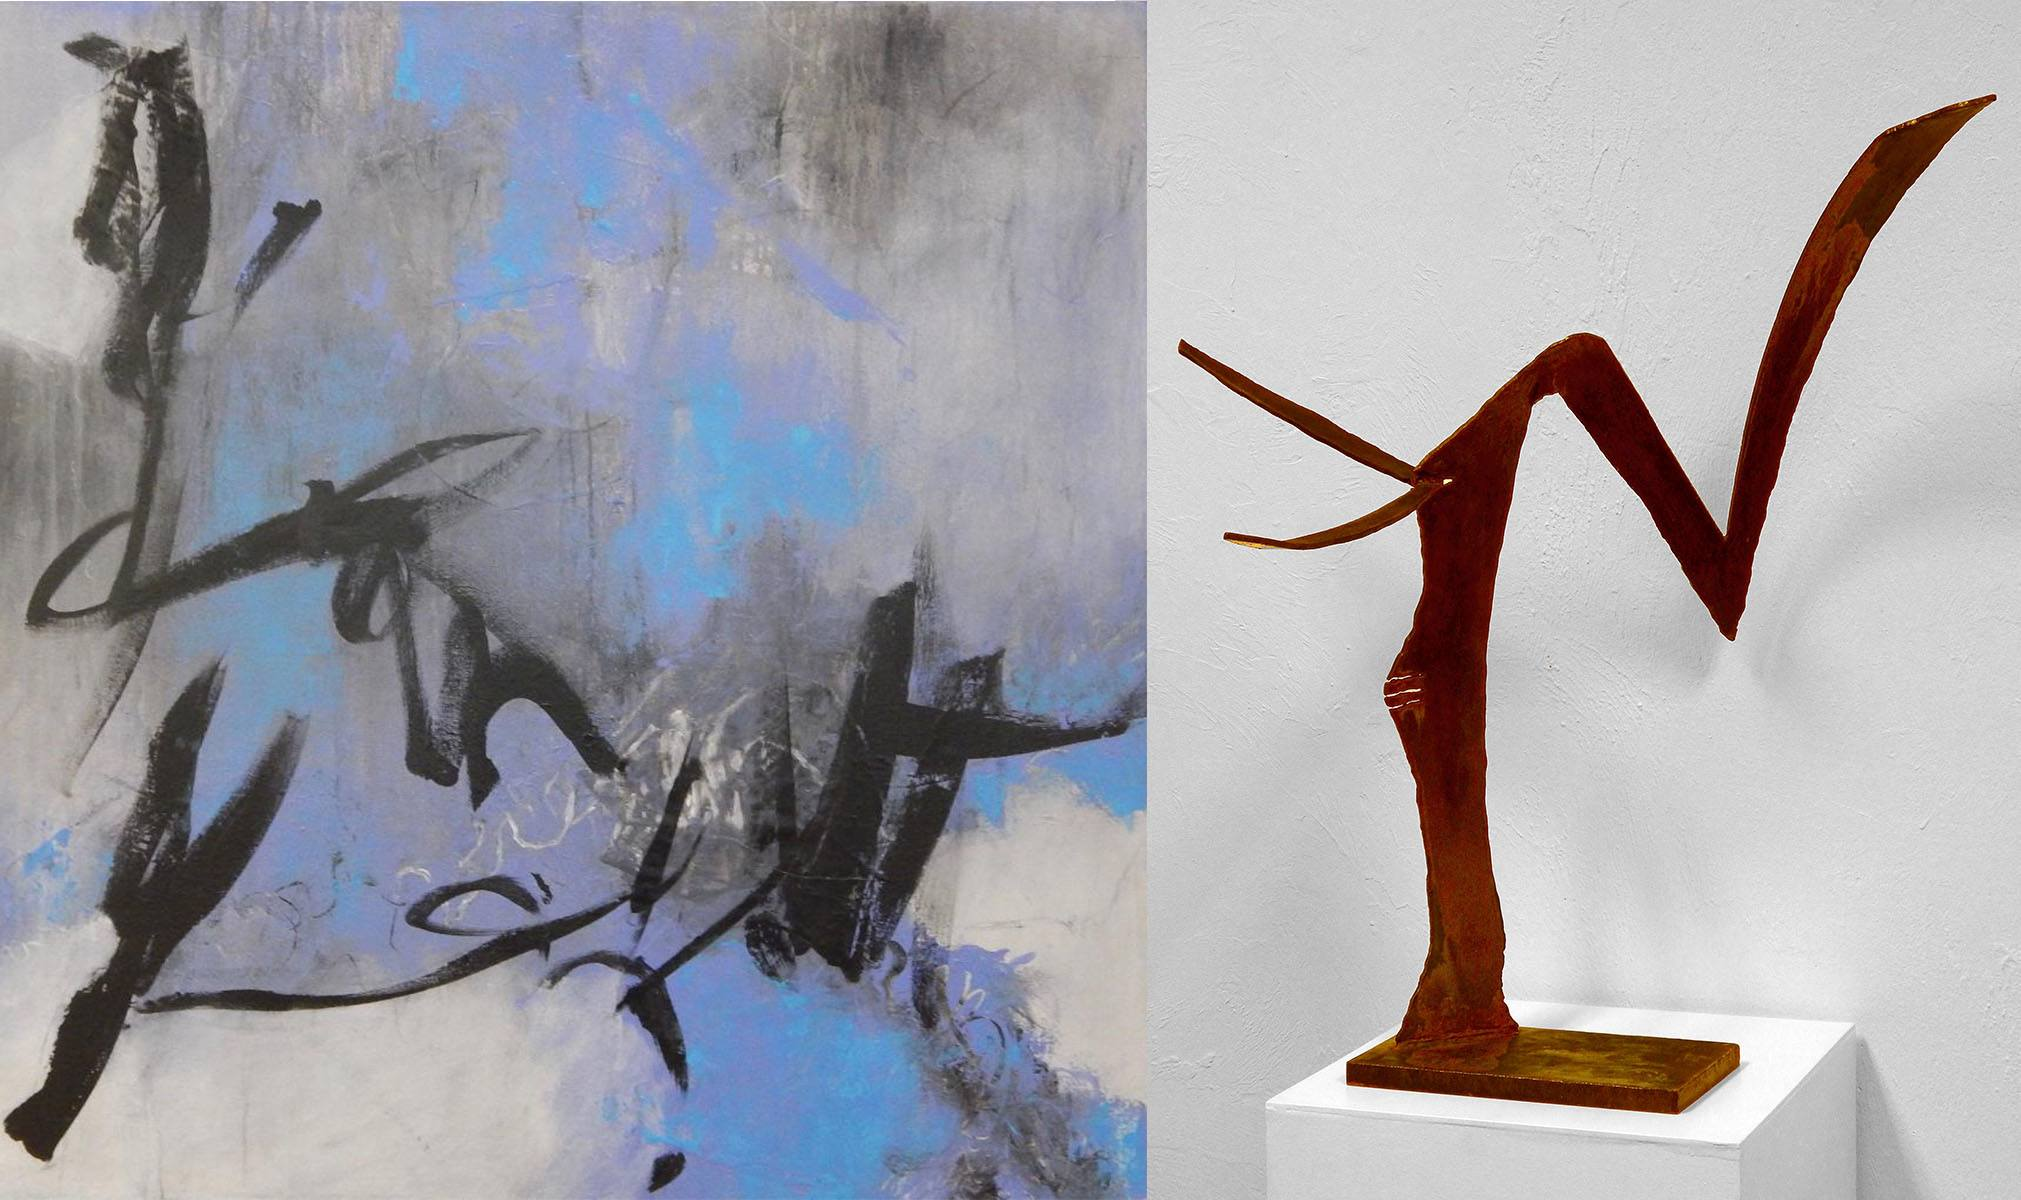 Art Exhibition - February - Cheri Erdman & Frederick Goldstein - Abstract Sculpture and Paintings: Interplay Between Metal and Canvas